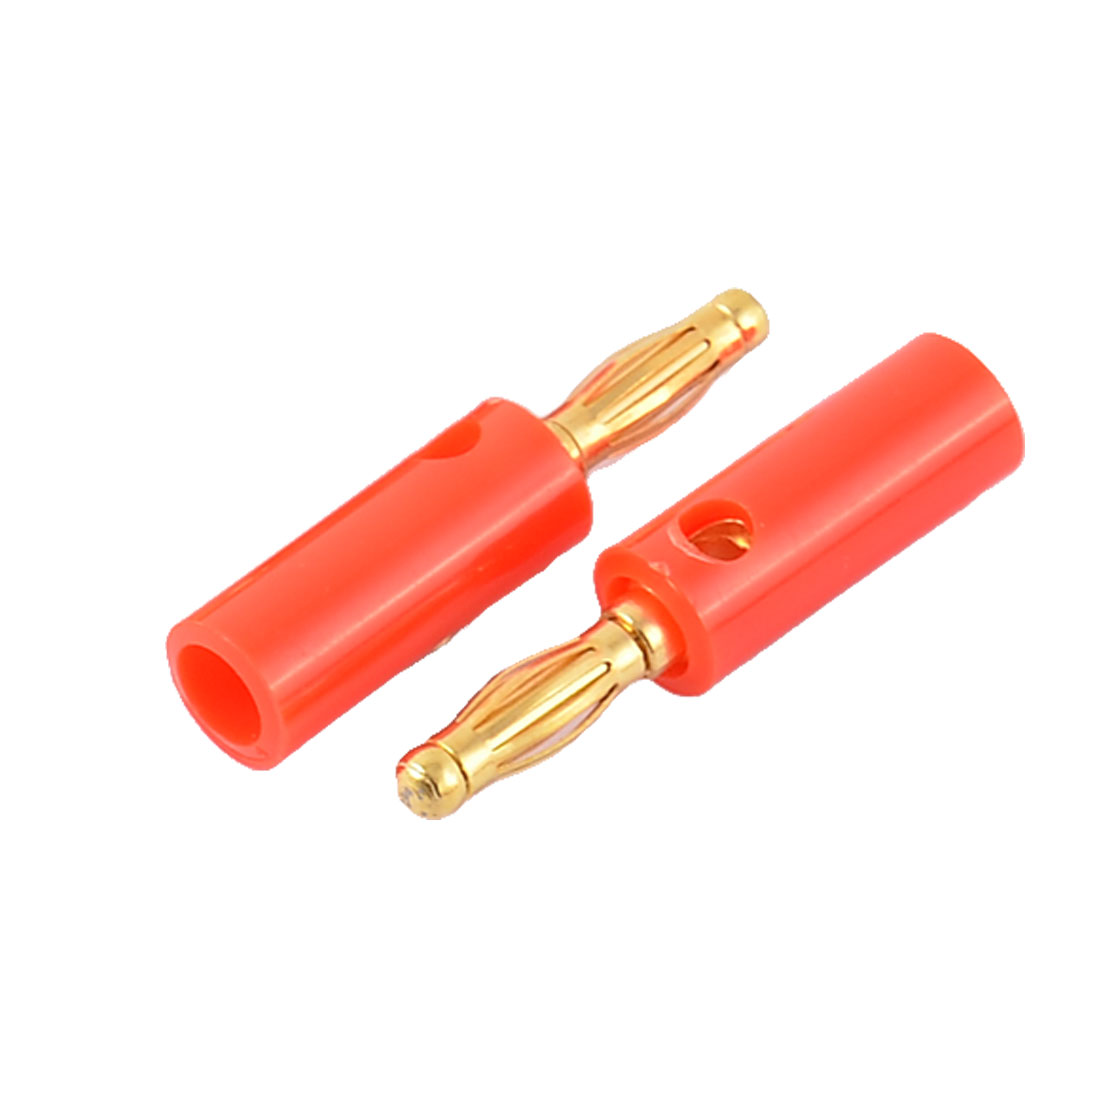 2pcs Red Plastic Housing Audio Speaker Cable Screw Design Banana Connector